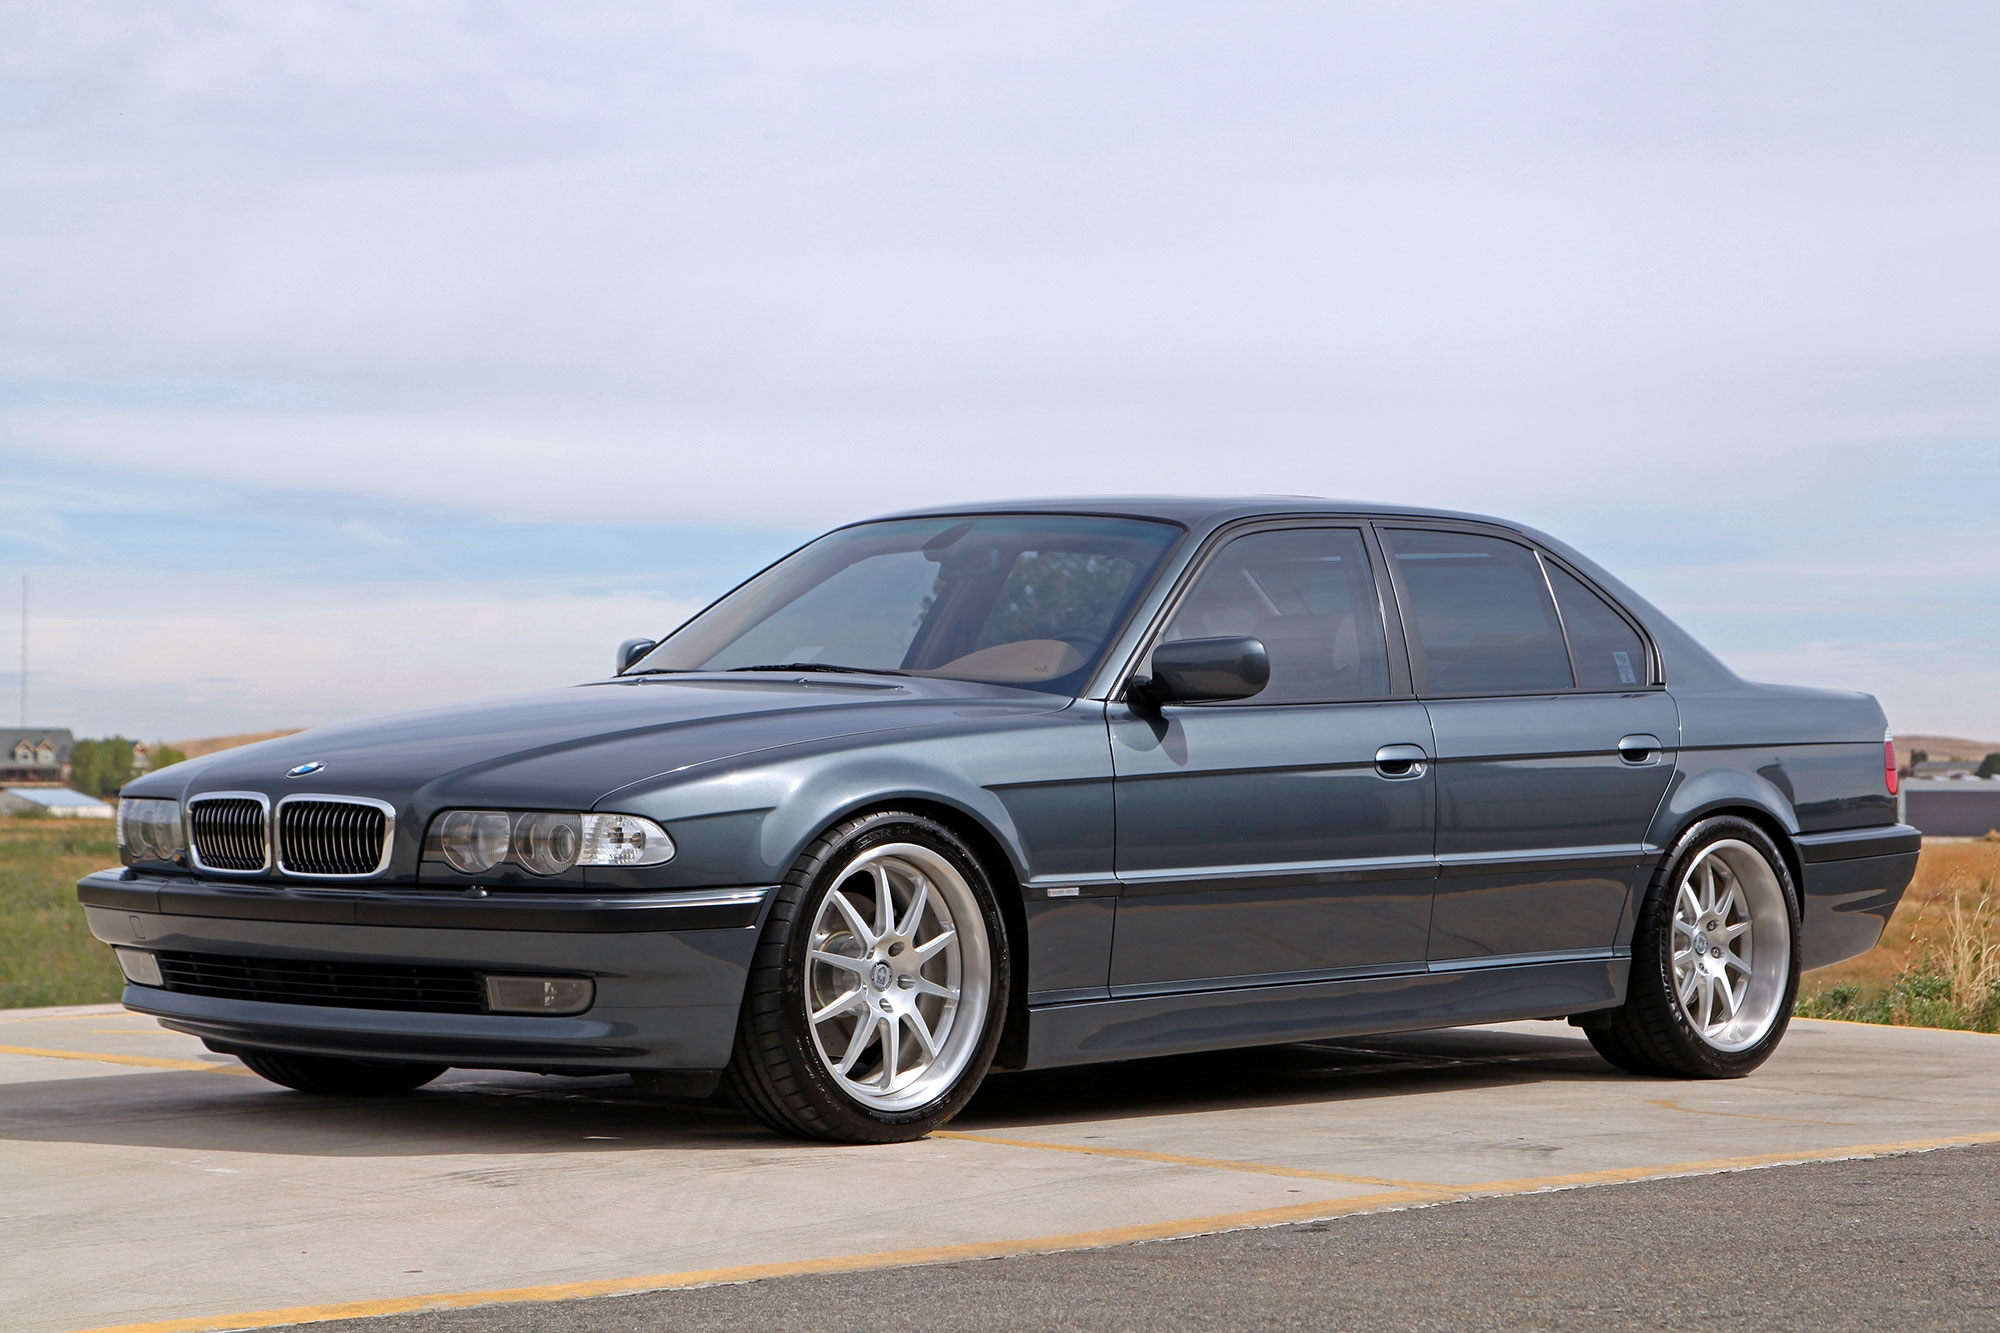 2001 bmw 740i m sport glen shelly auto brokers denver. Black Bedroom Furniture Sets. Home Design Ideas